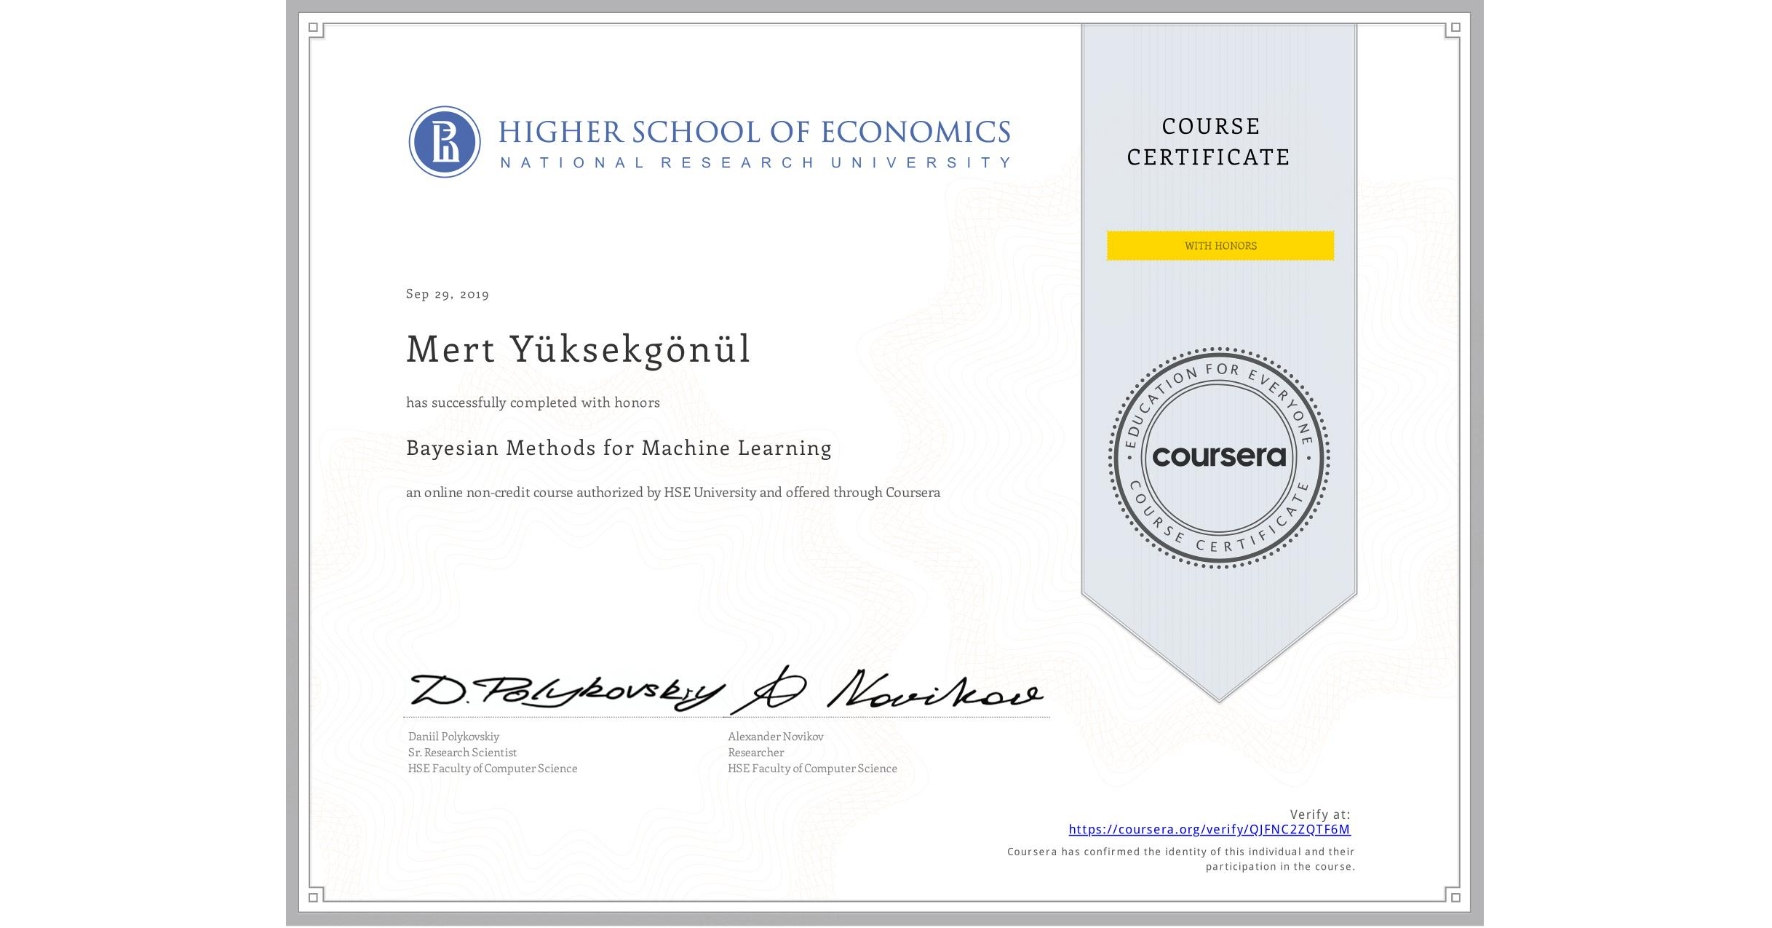 View certificate for Mert Yüksekgönül, Bayesian Methods for Machine Learning, an online non-credit course authorized by National Research University Higher School of Economics and offered through Coursera